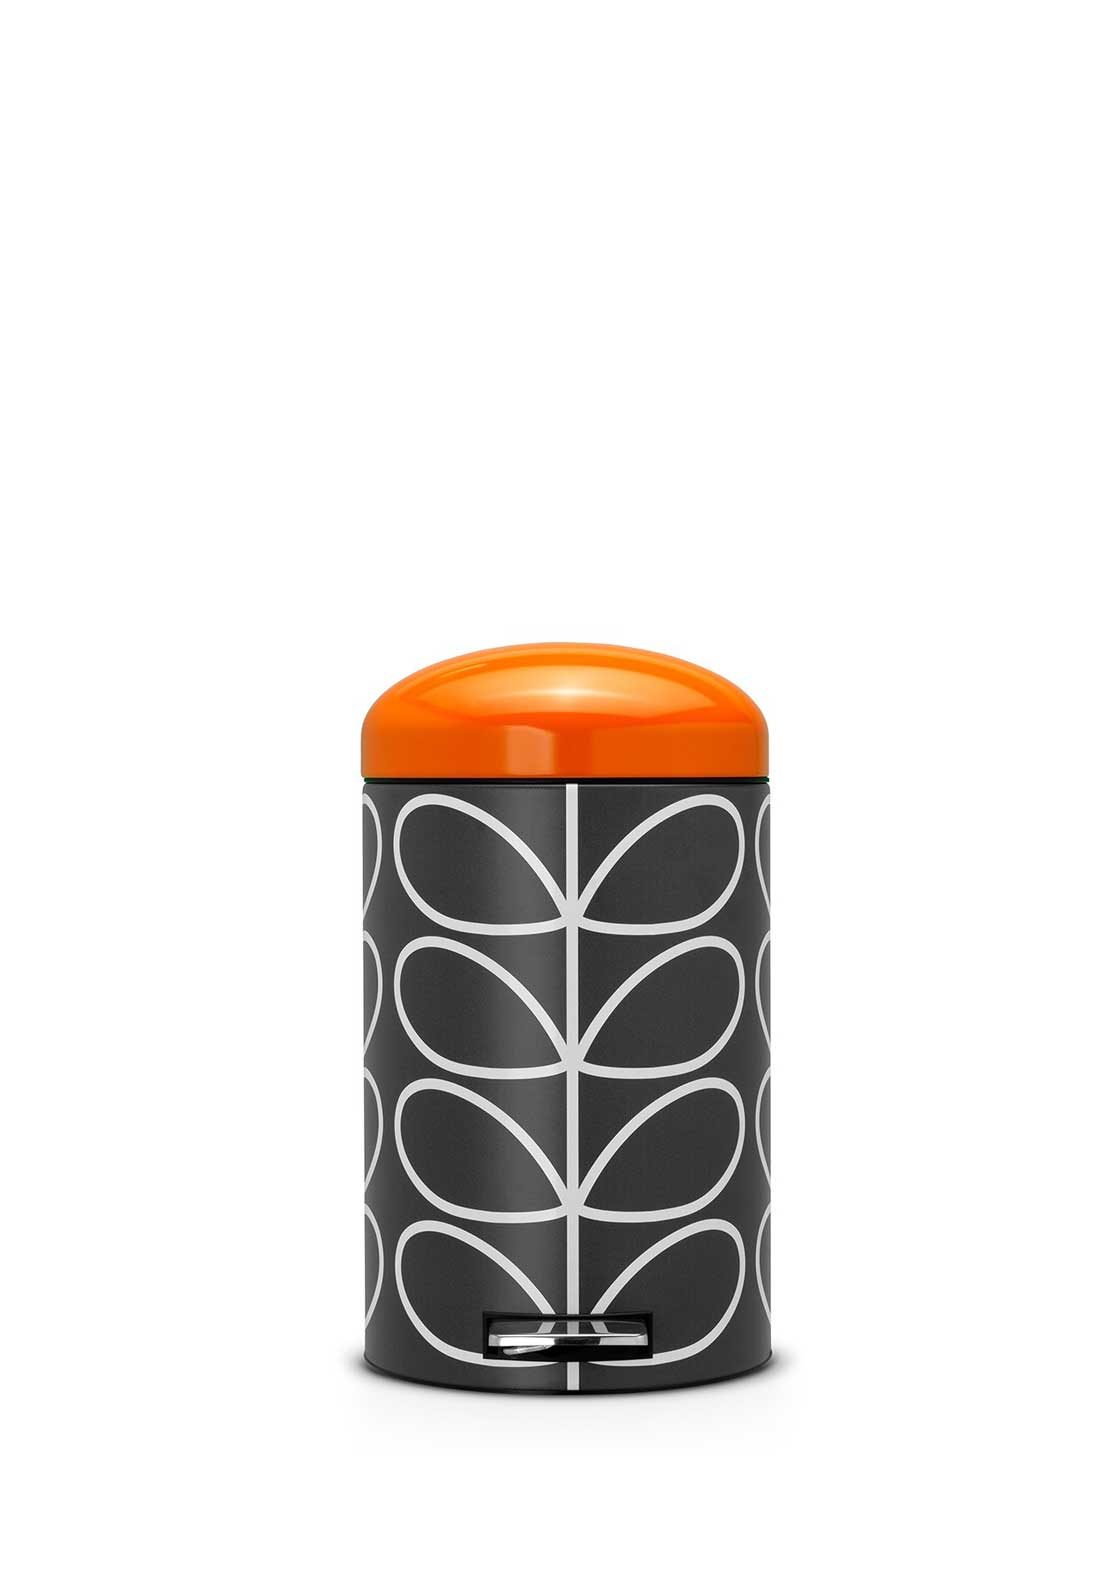 Orla Kiely Retro Silent Bin by Brabantia in Linear Stem Print, Charcoal, 12ltr